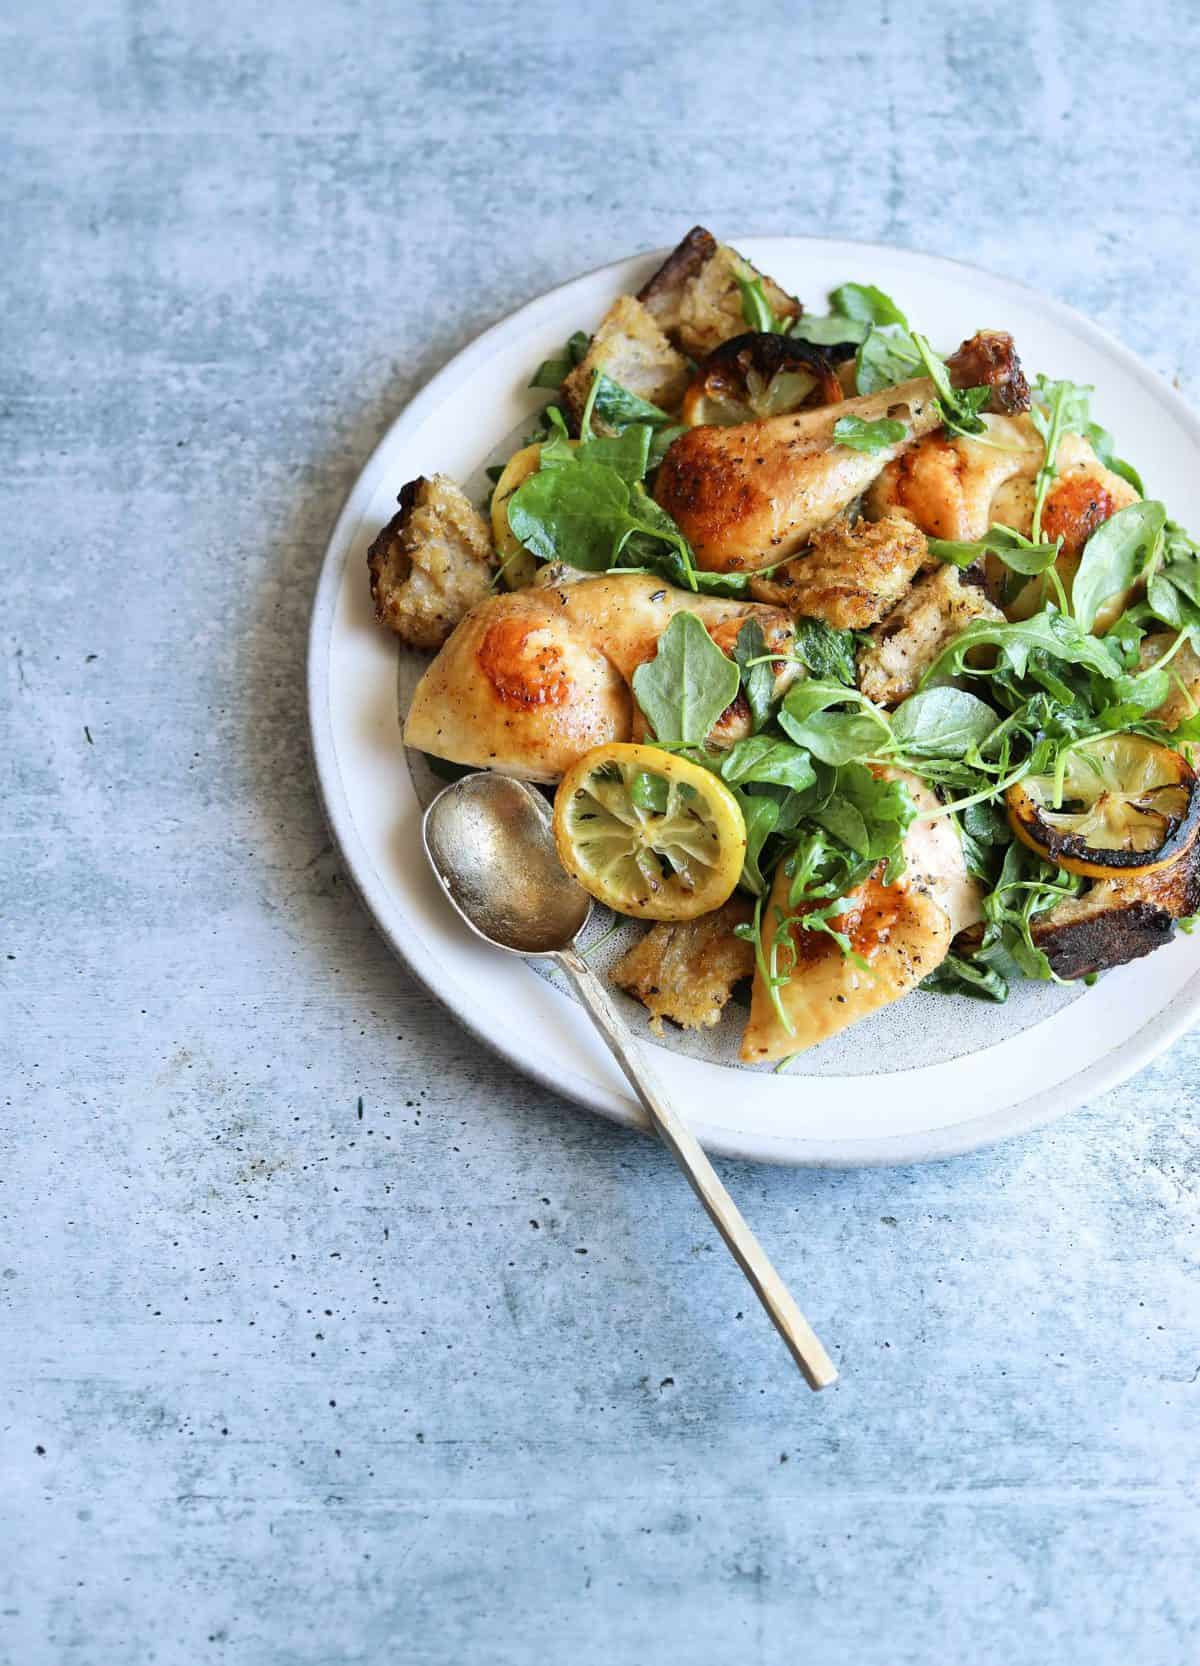 Roast Chicken with Toasted Bread Salad on a white plate with a gold spoon